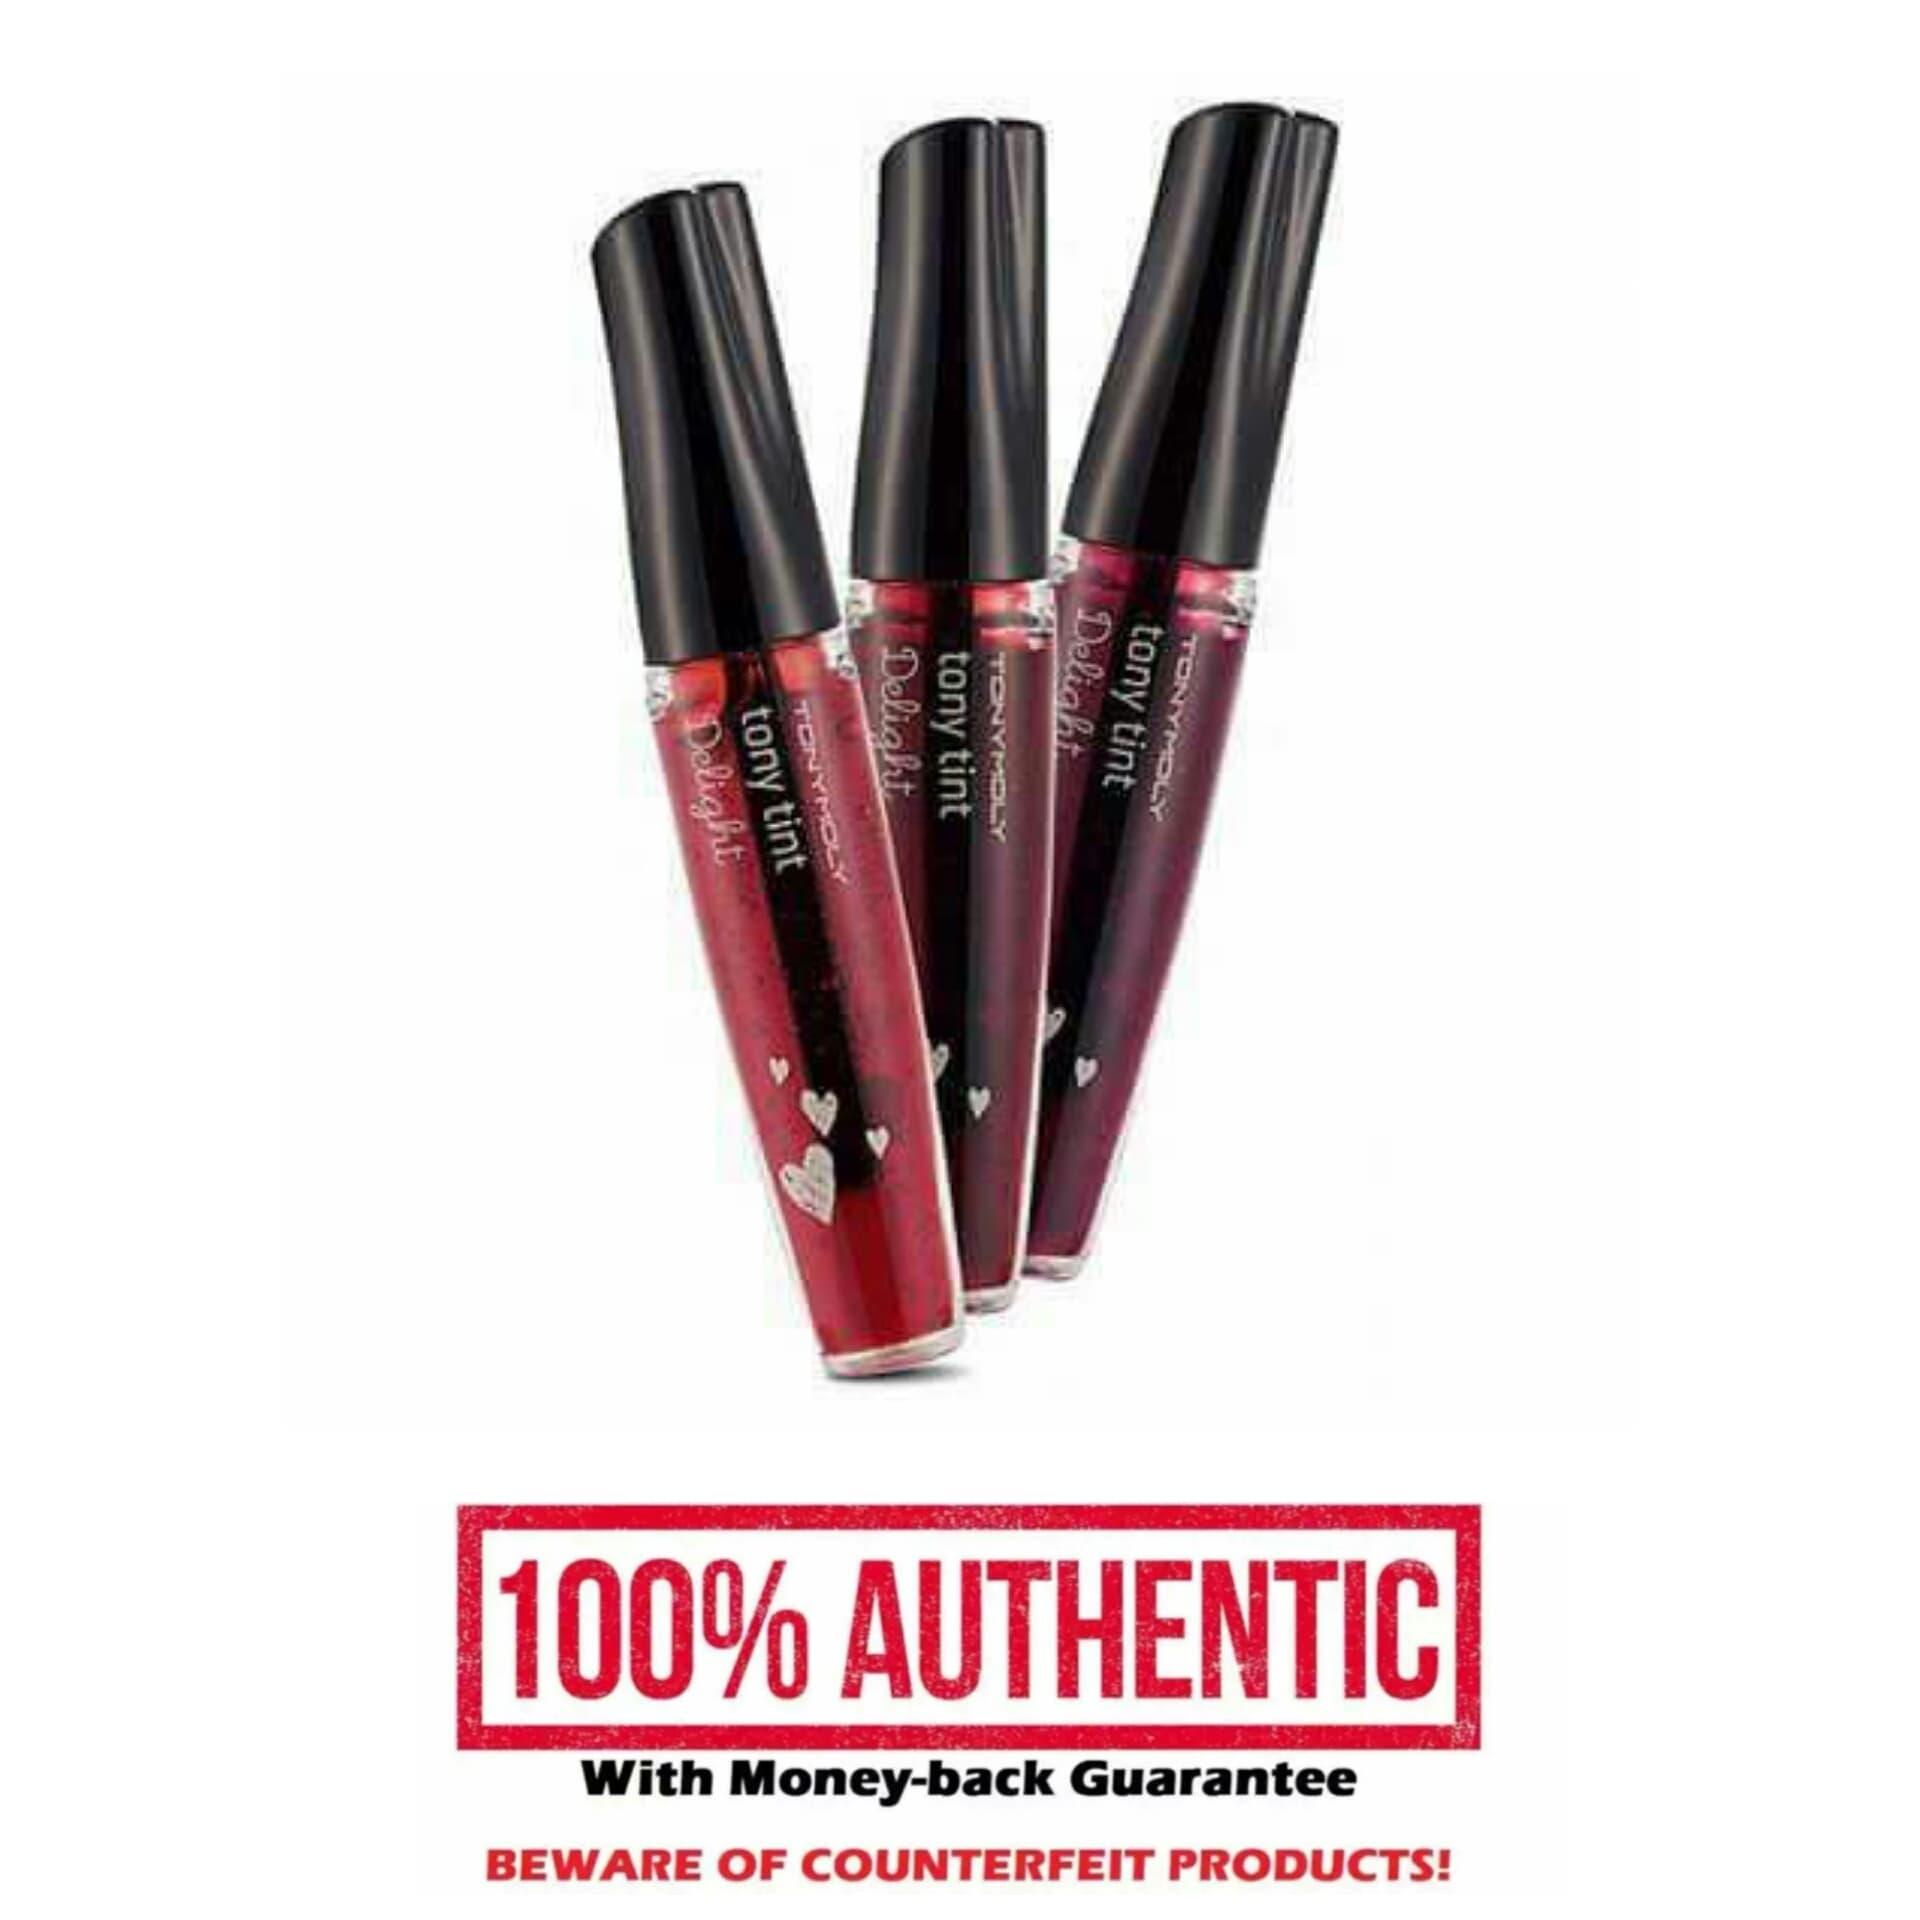 Authentic Tony M Delight Lip and Cheek Tint - RED Philippines